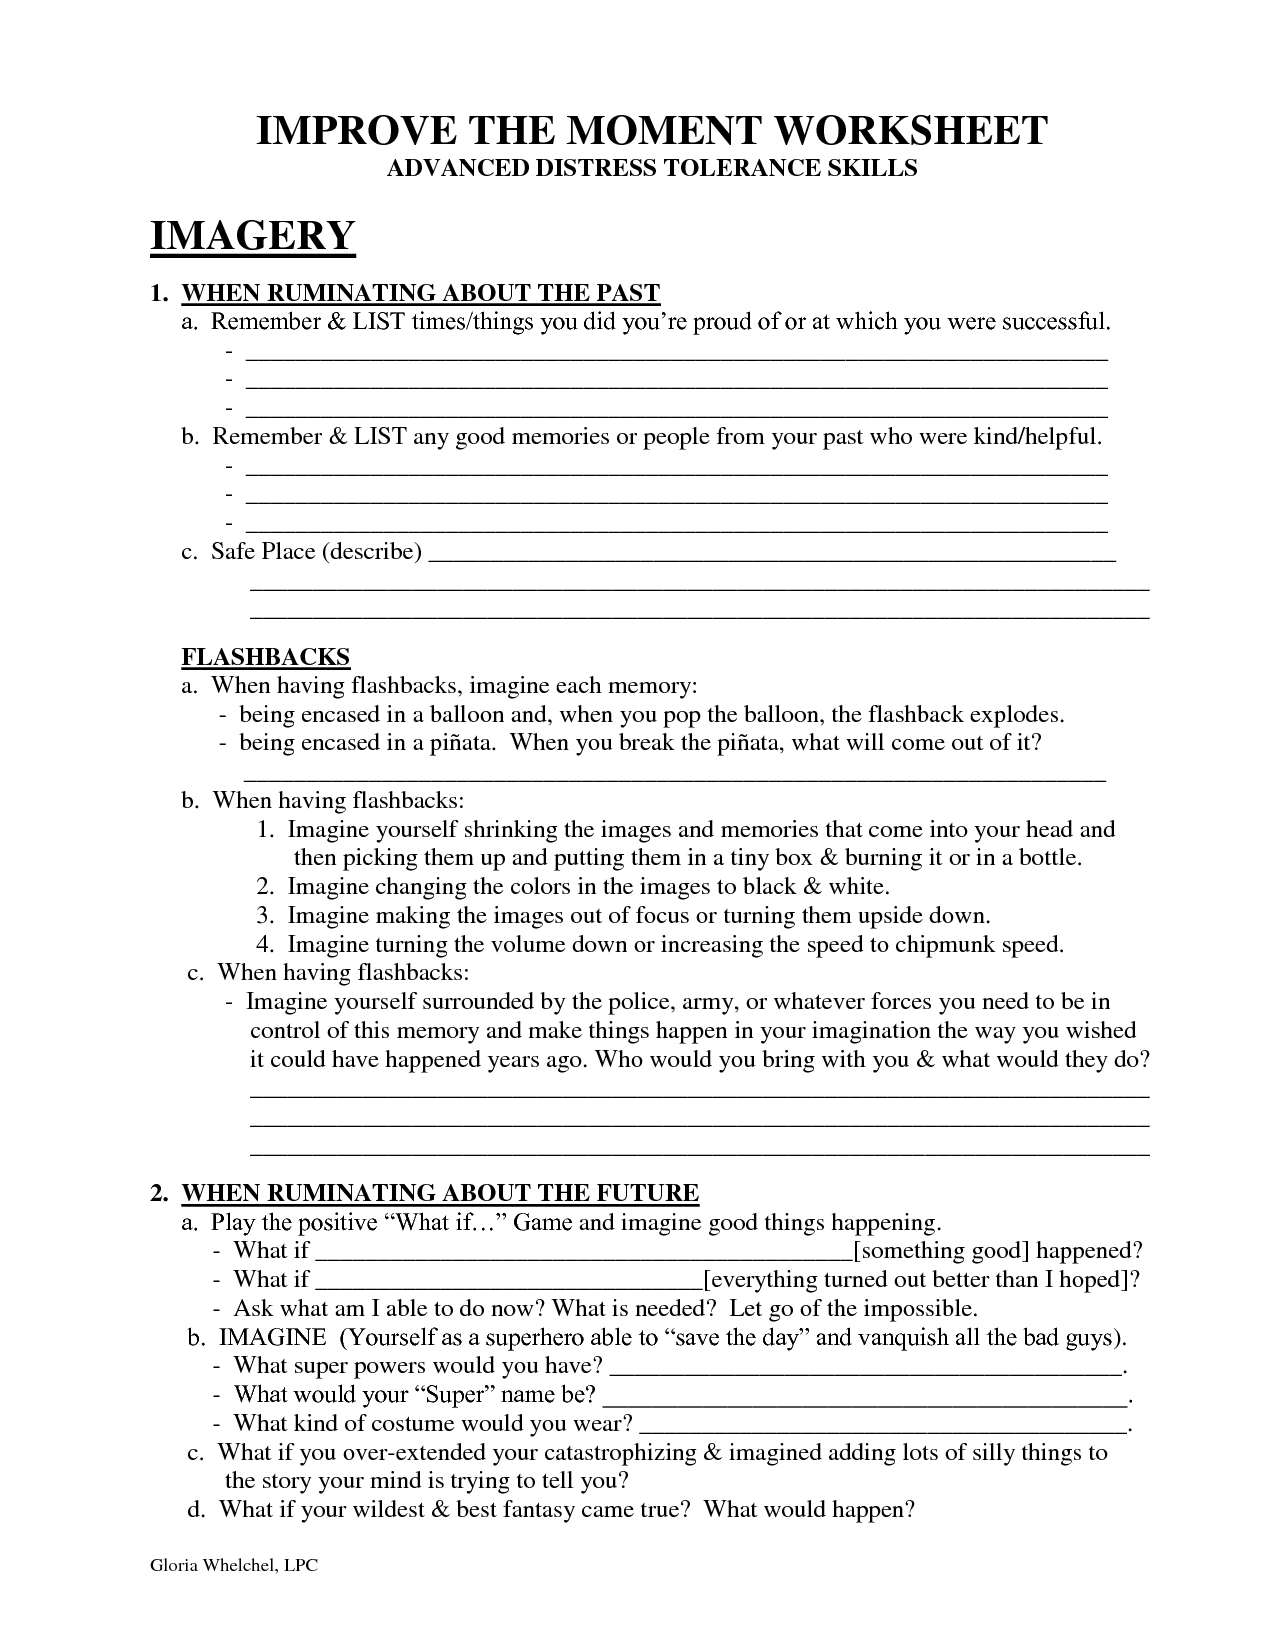 worksheet Art Therapy Worksheets improve the moment worksheet dbt self help and mindfulness help